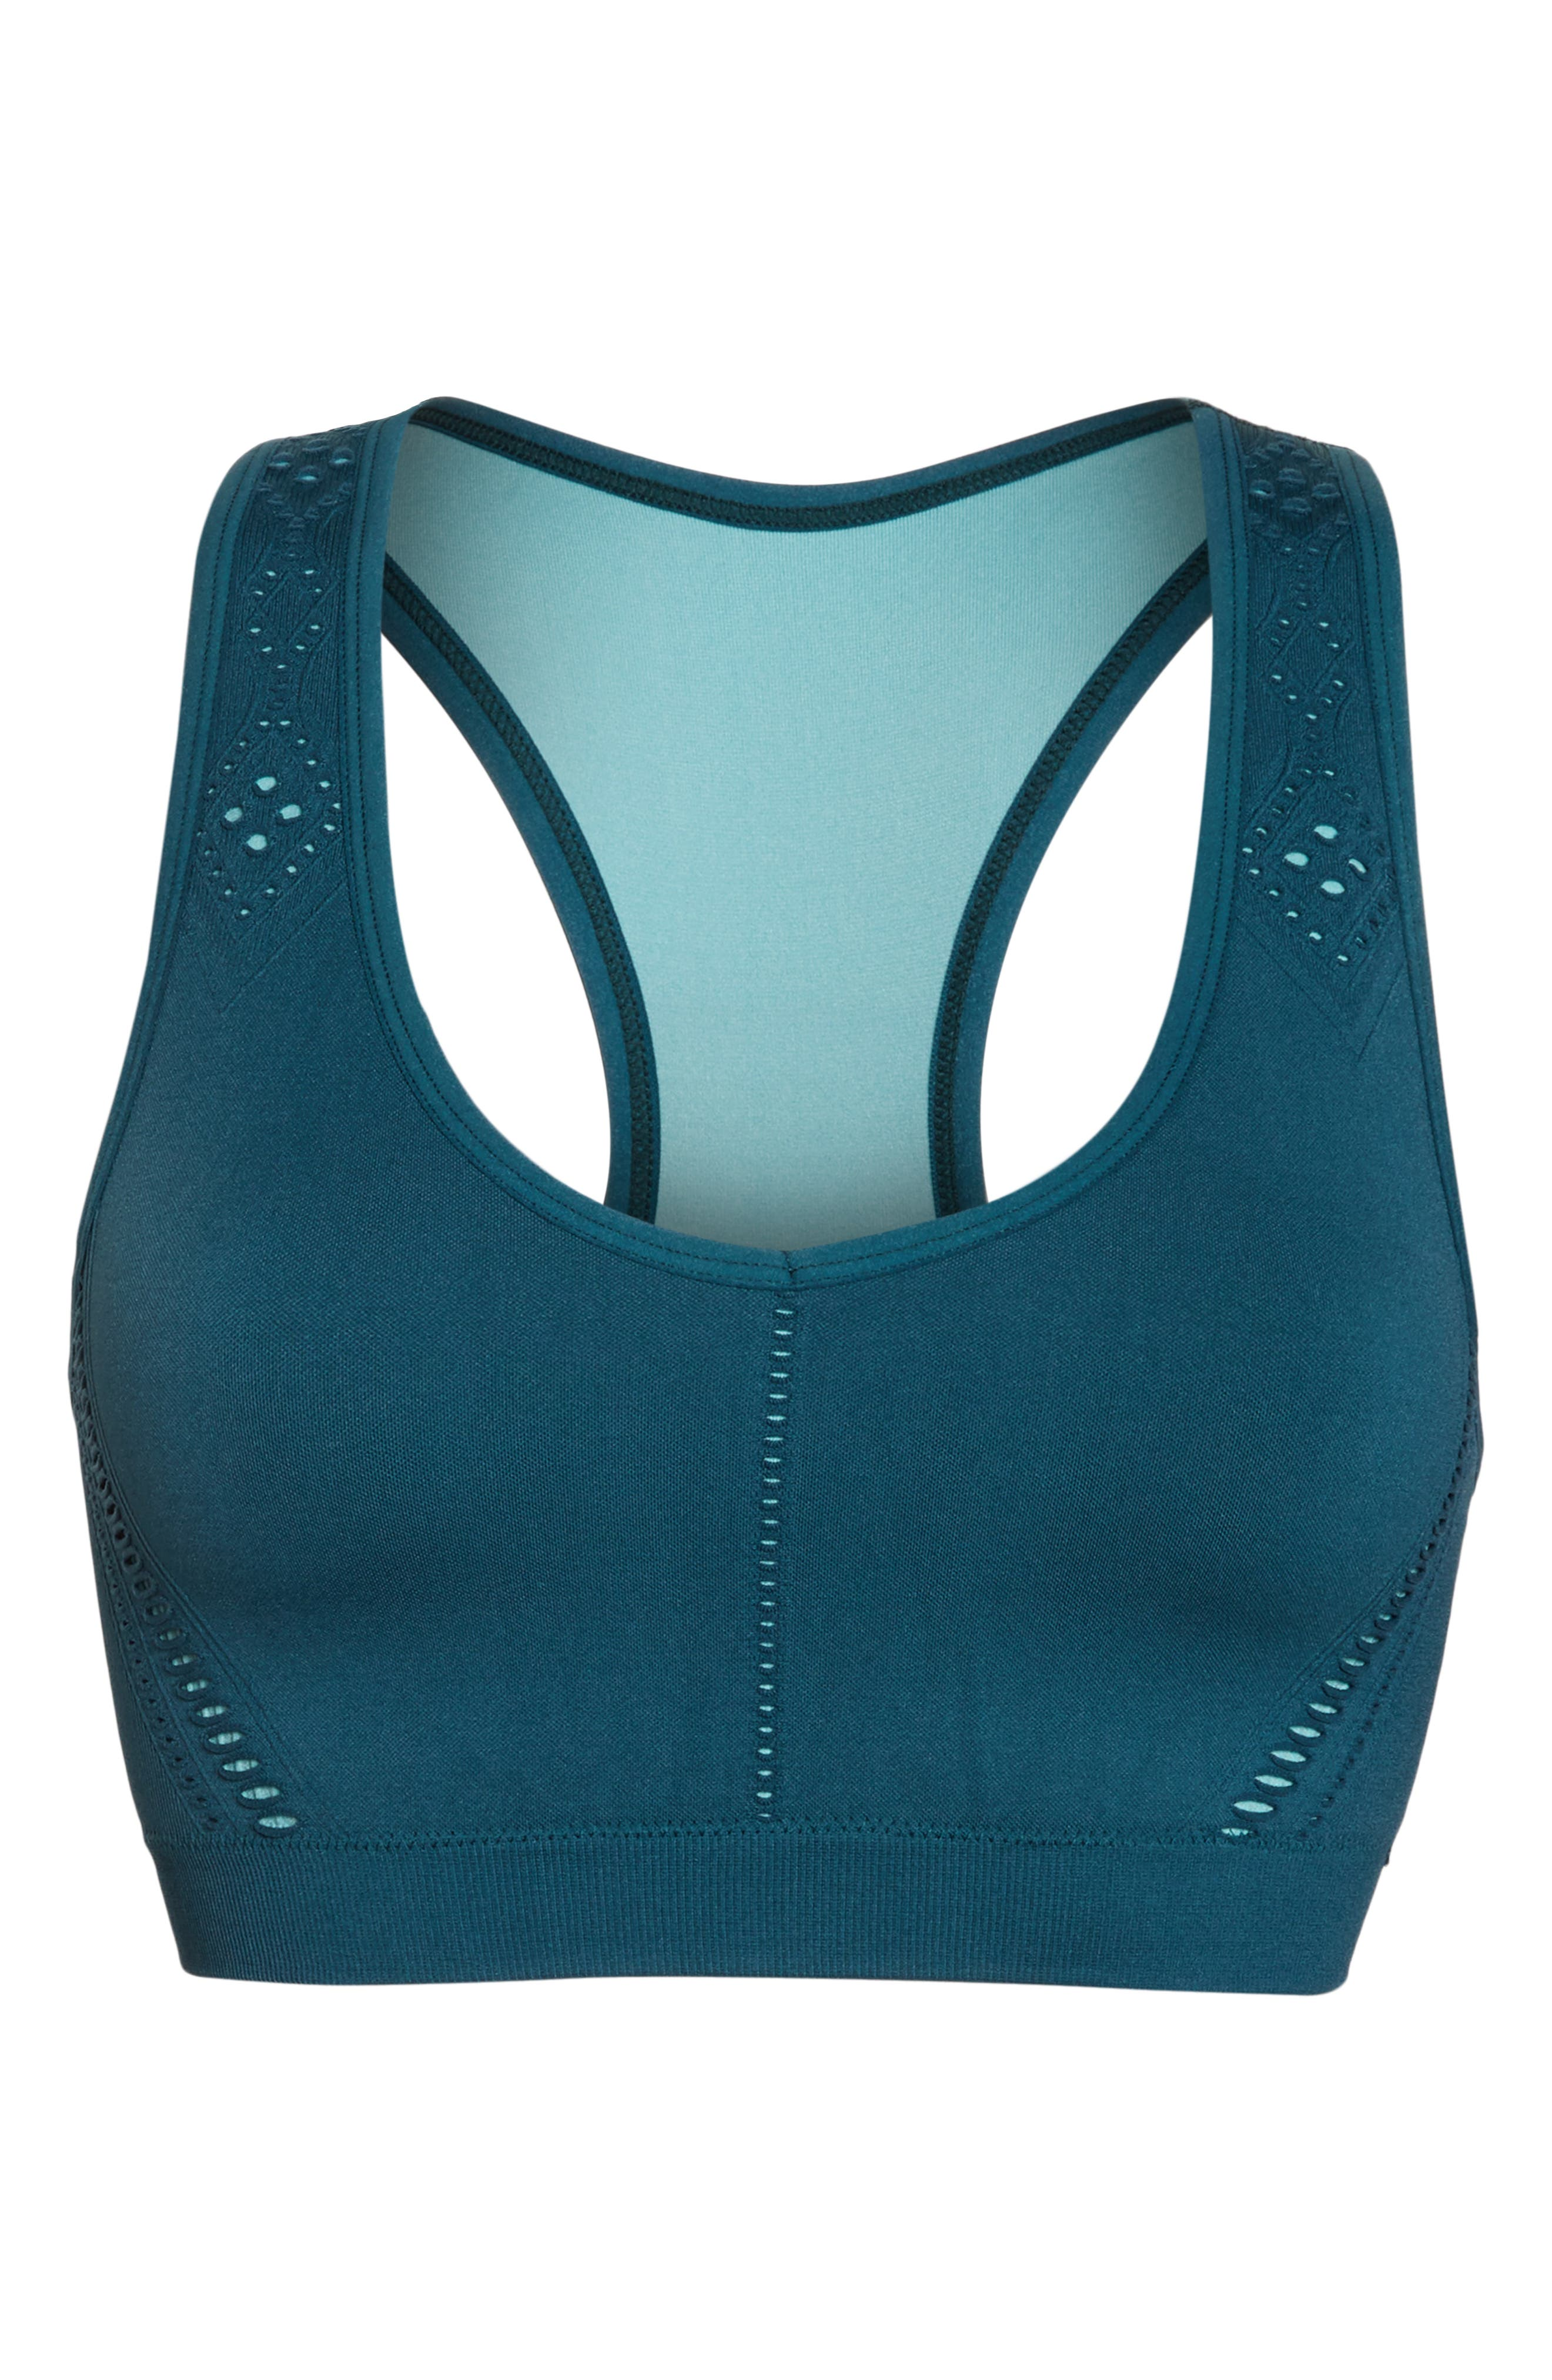 CLIMAWEAR,                             Hansa Sports Bra,                             Alternate thumbnail 6, color,                             NORTH SEA W/ AQUA HAZE